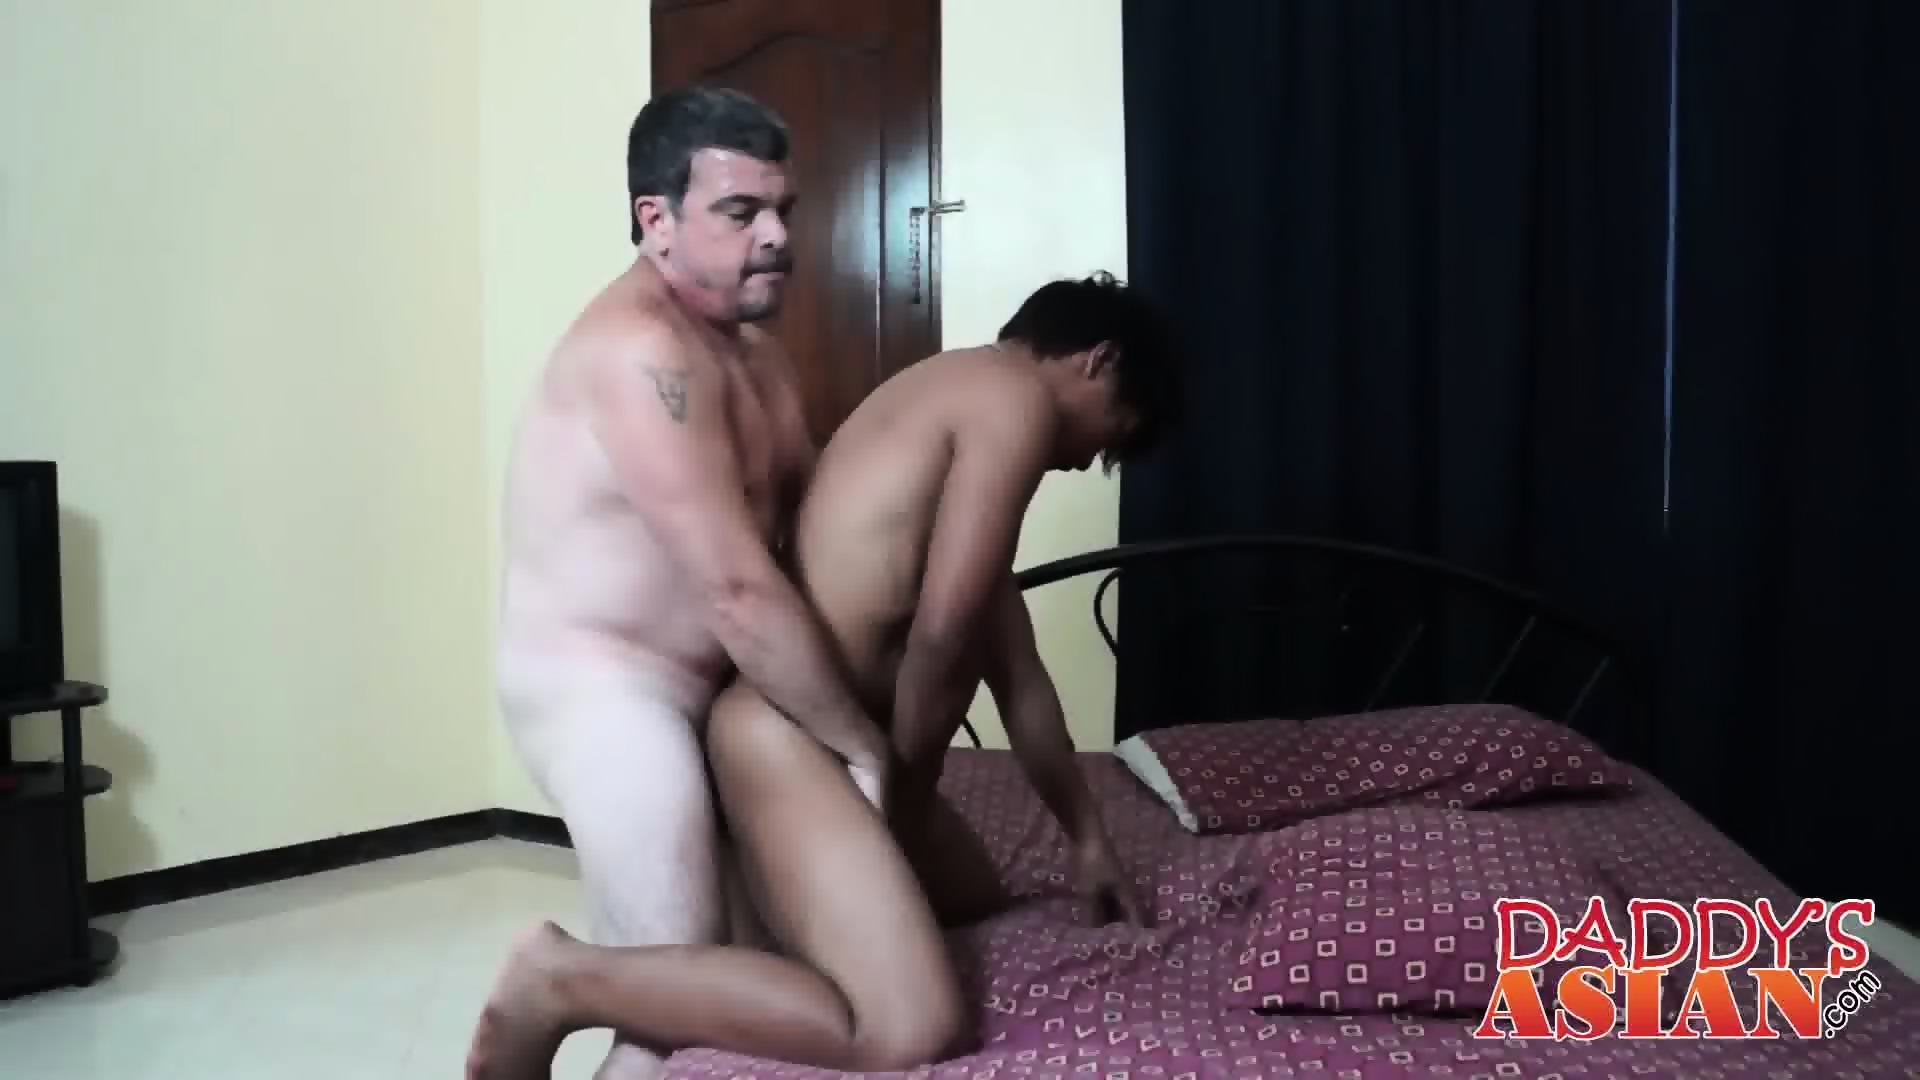 win trio condom pounding till cumshot would like